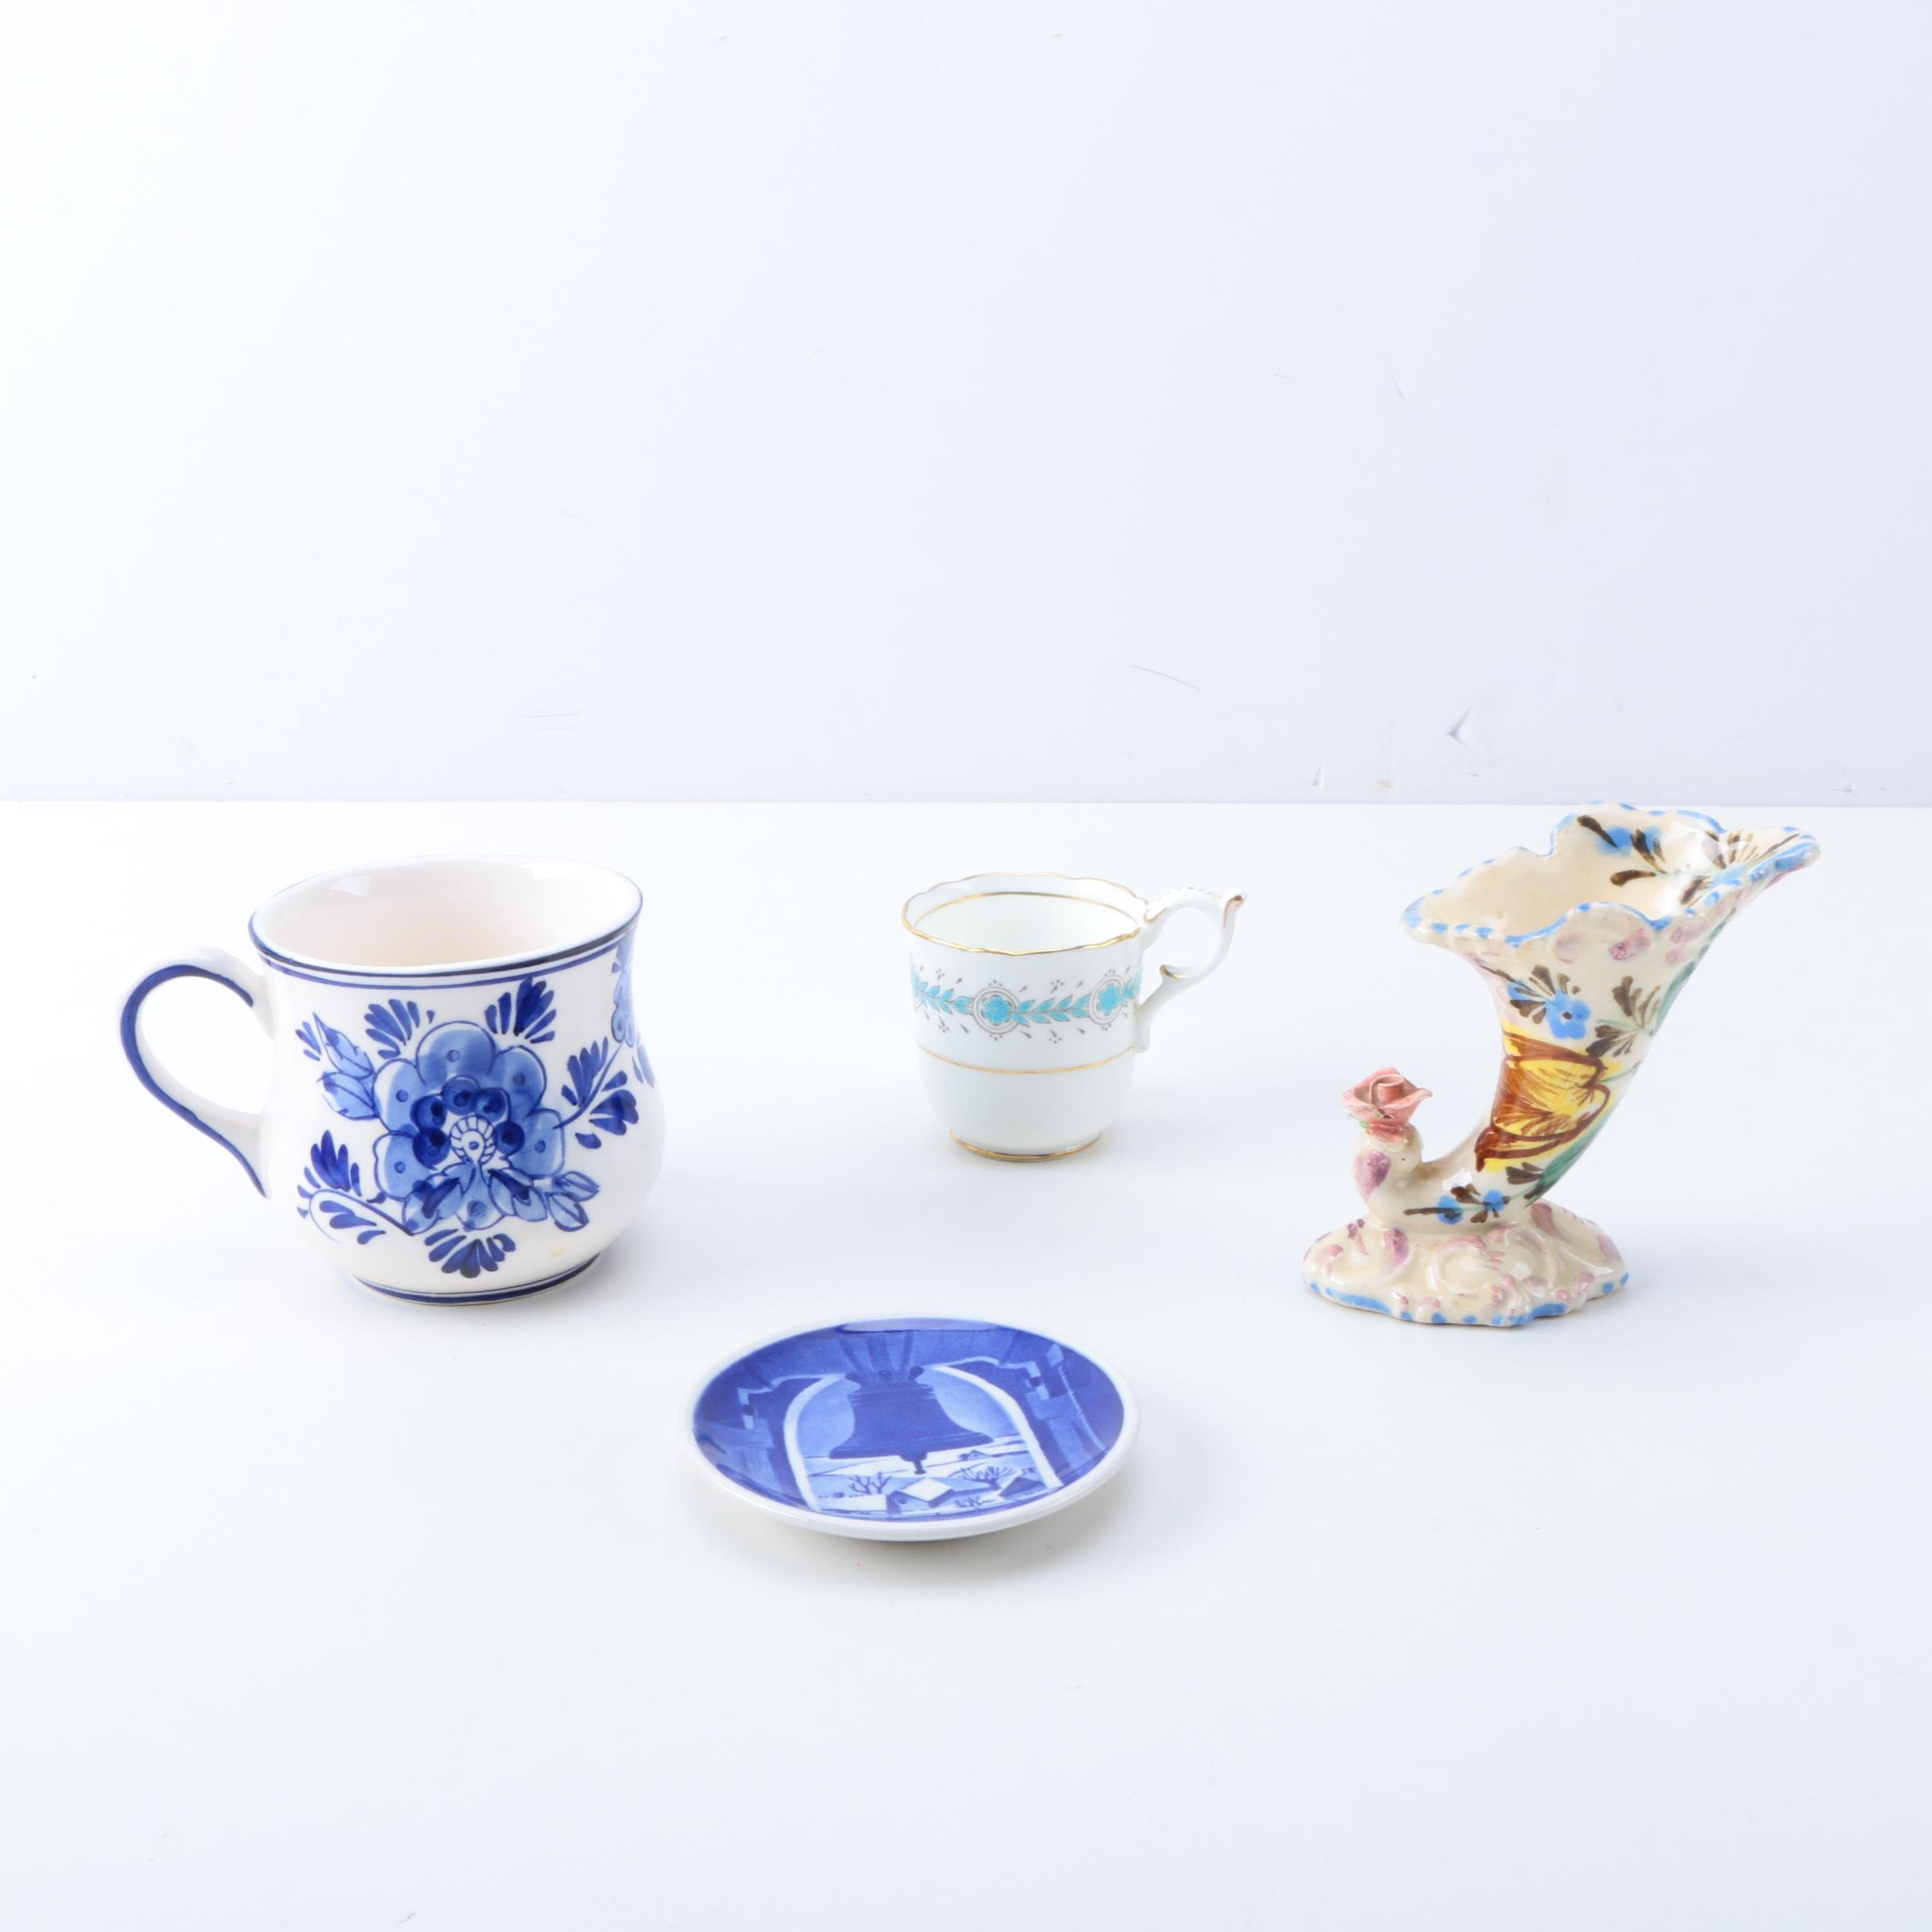 Porcelain Tableware including Royal Copenhagen